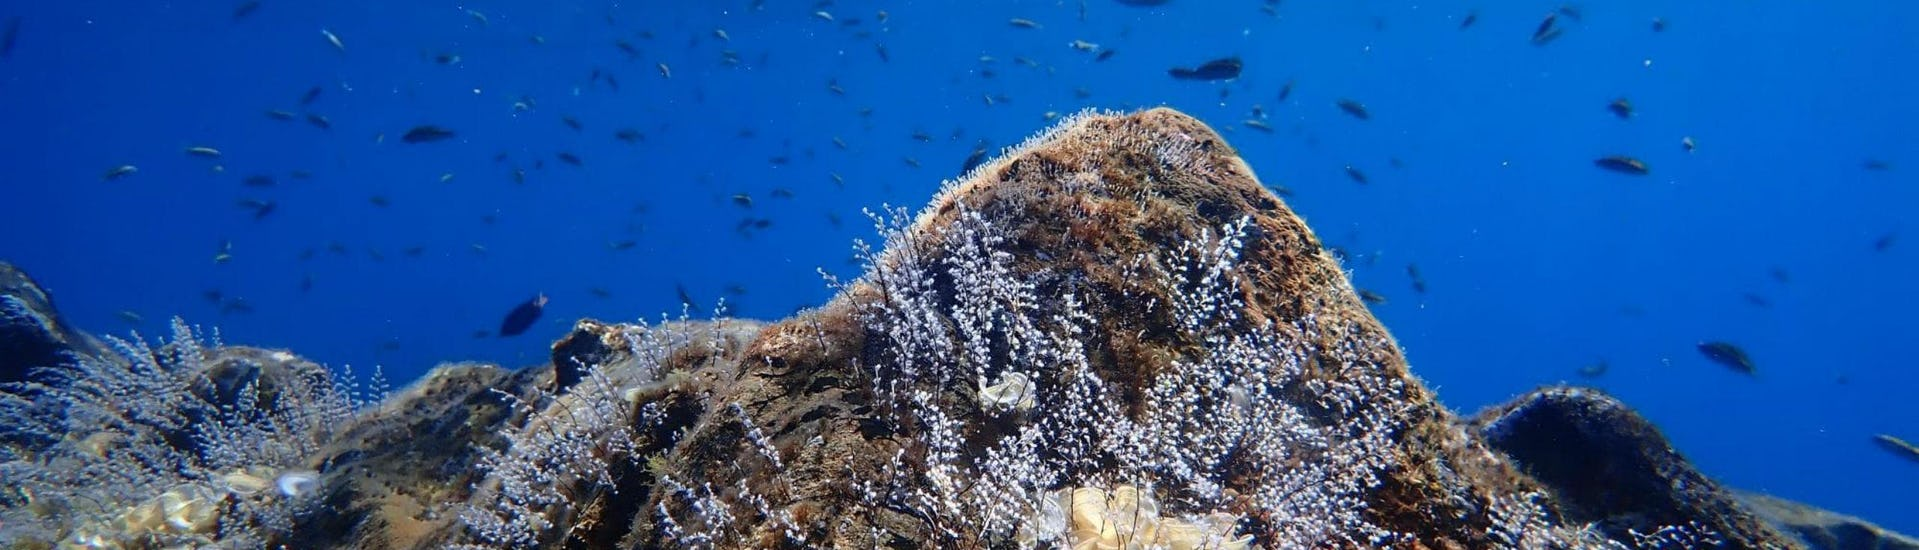 Discover Scuba Diving for Beginners - Tenerife